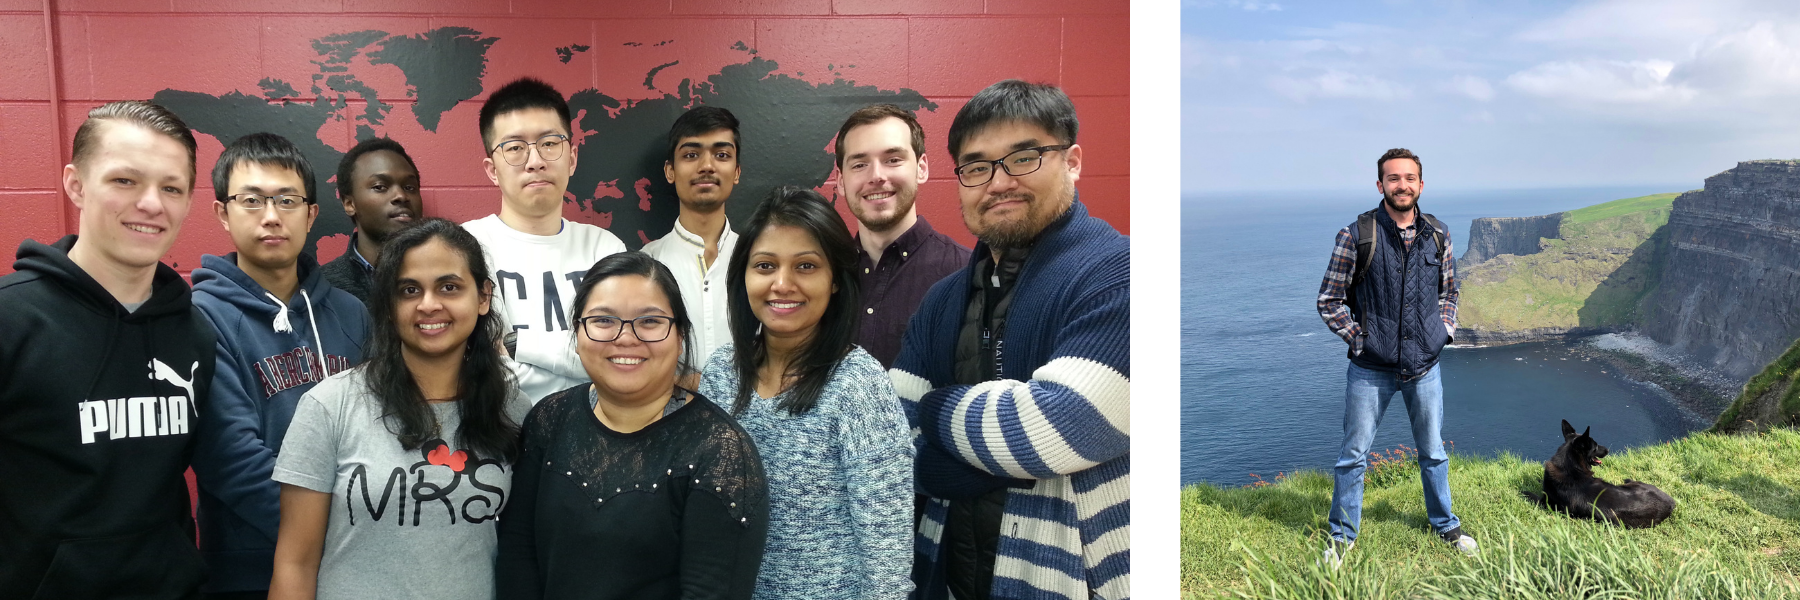 international students in front of wall with world map. Student studying abroad in Ireland on right.